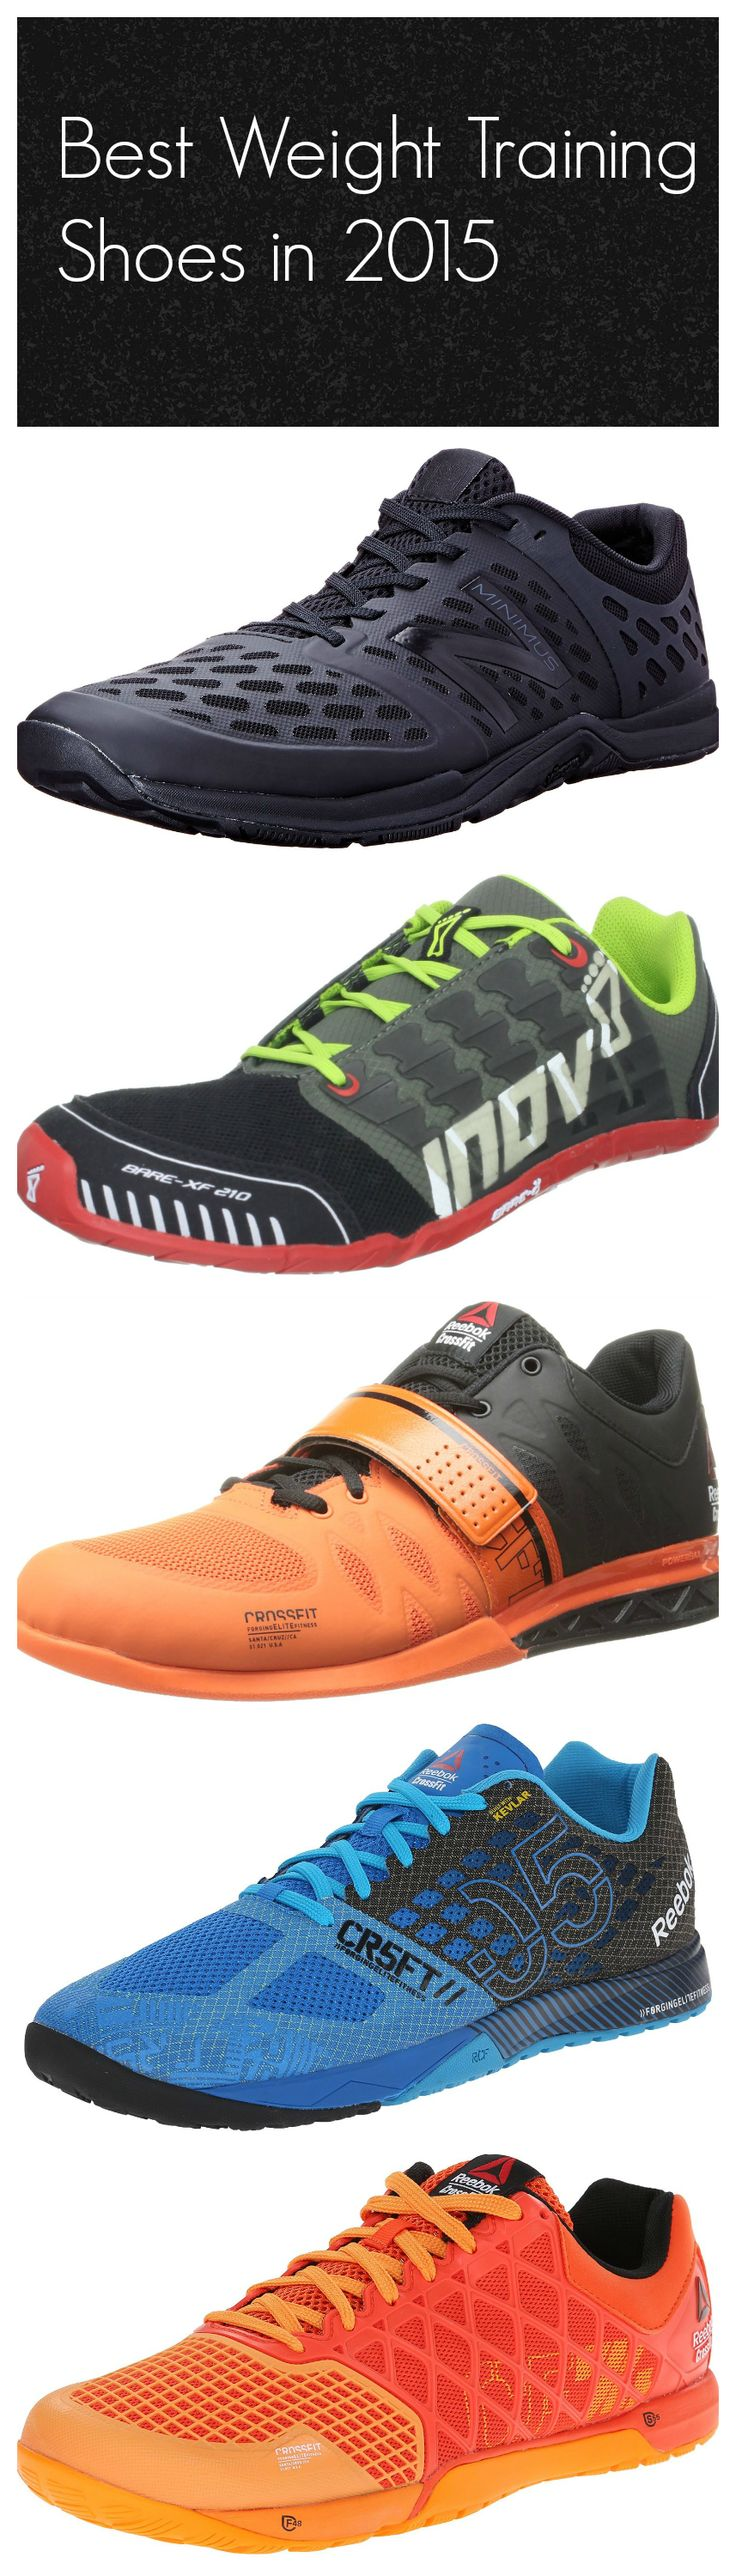 Best Weight Training Shoes in 2015 http://www.uksportsoutdoors.com/product/mizuno-wave-ekiden-10-unisex-adults-competition-running-shoes/